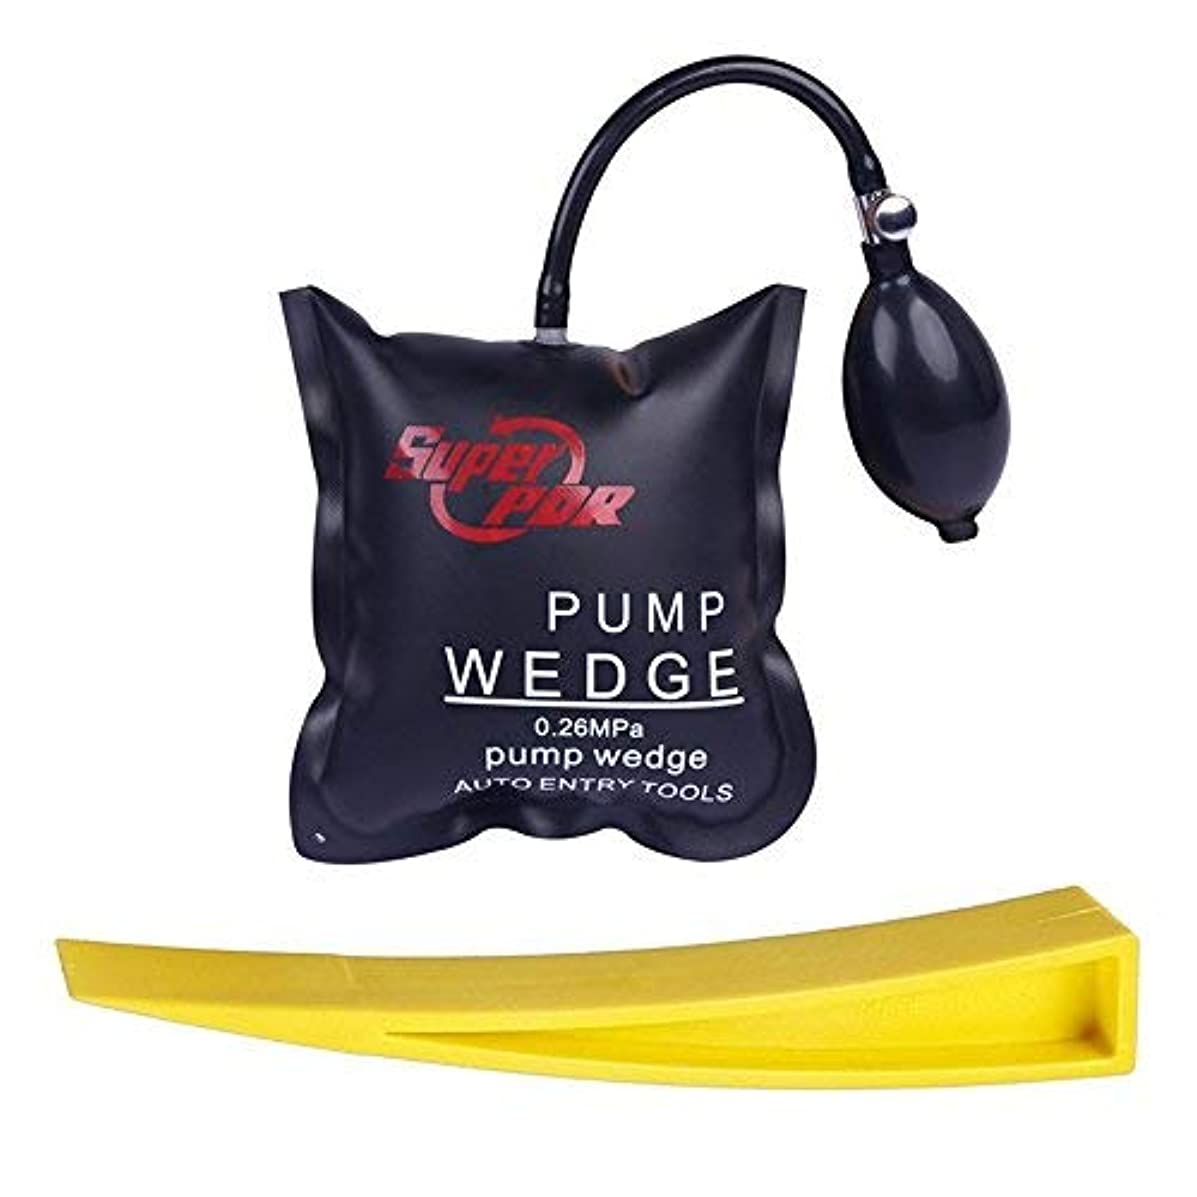 Fly5D Air Wedge Pump Wedge Hand Tools for Auto Repair Home Universal Use (Square)